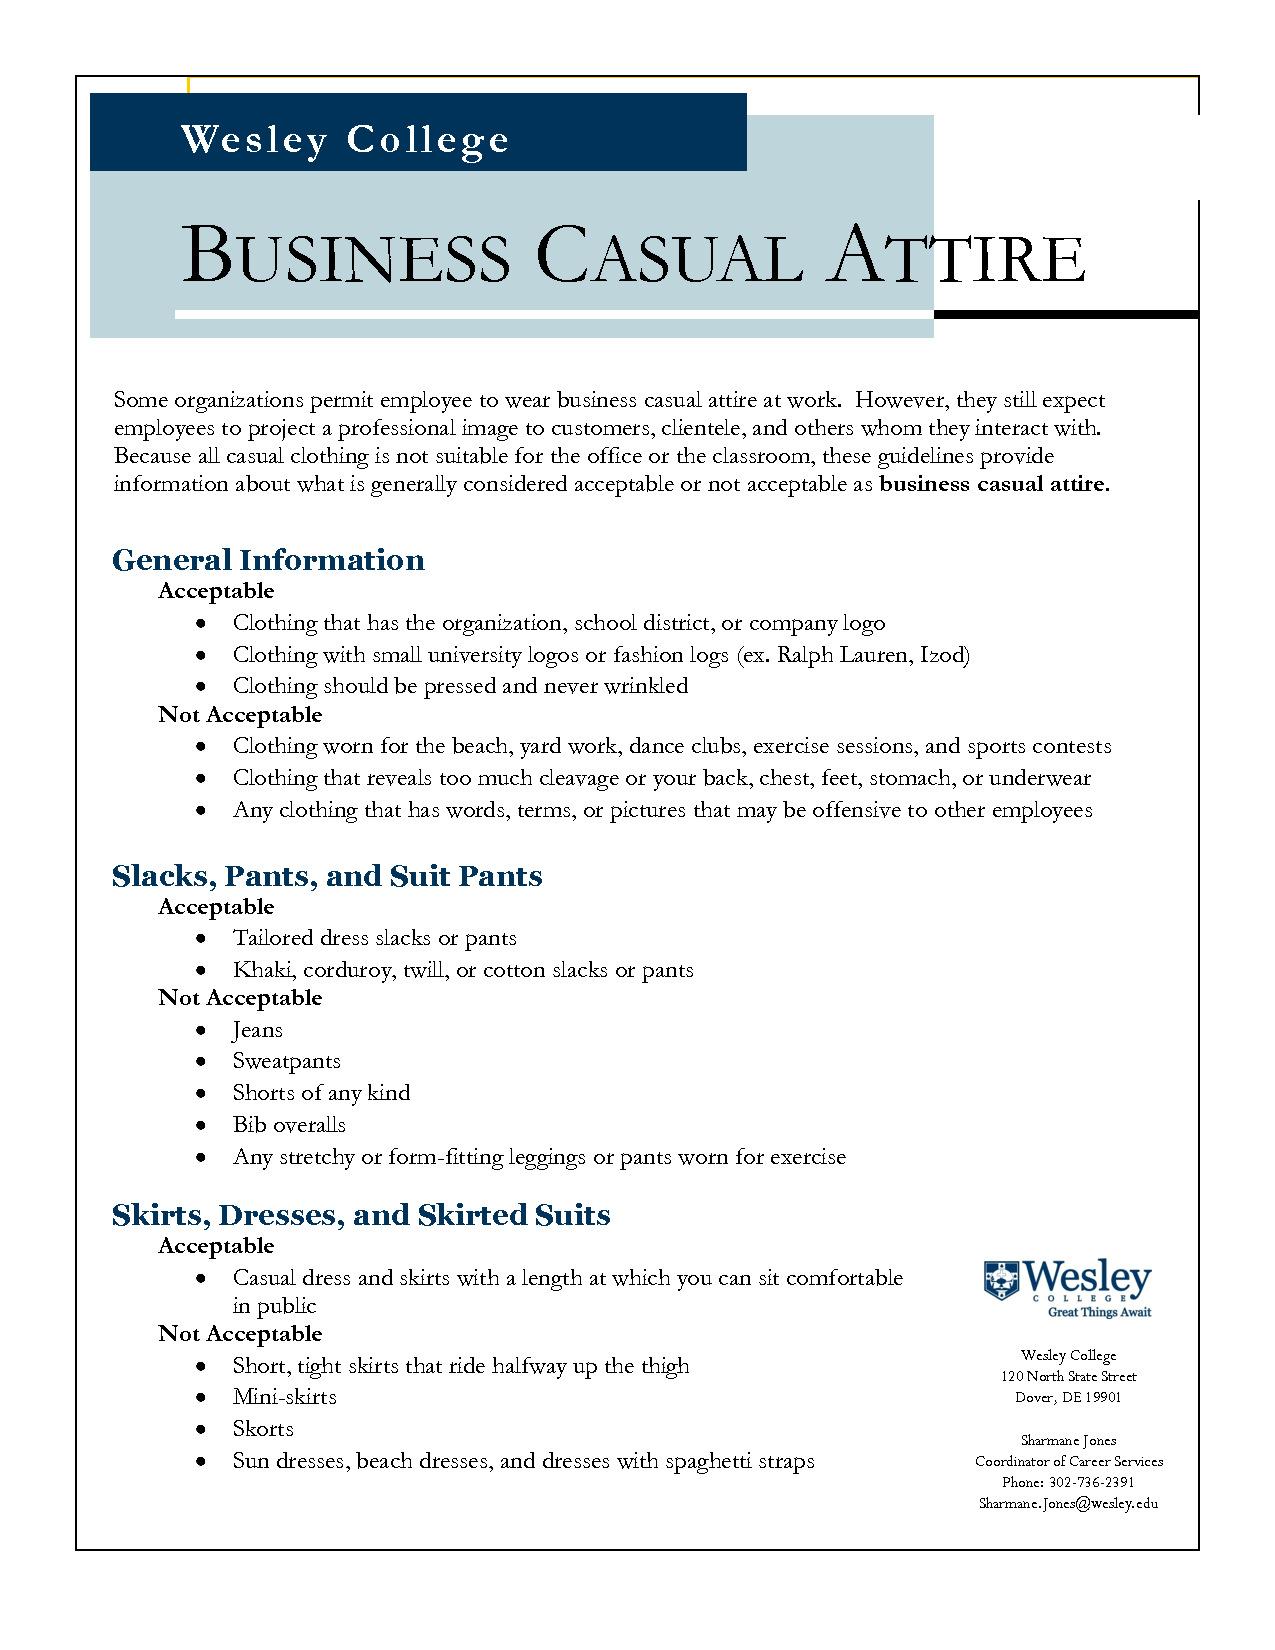 sample dress code policy business casual photo - 1